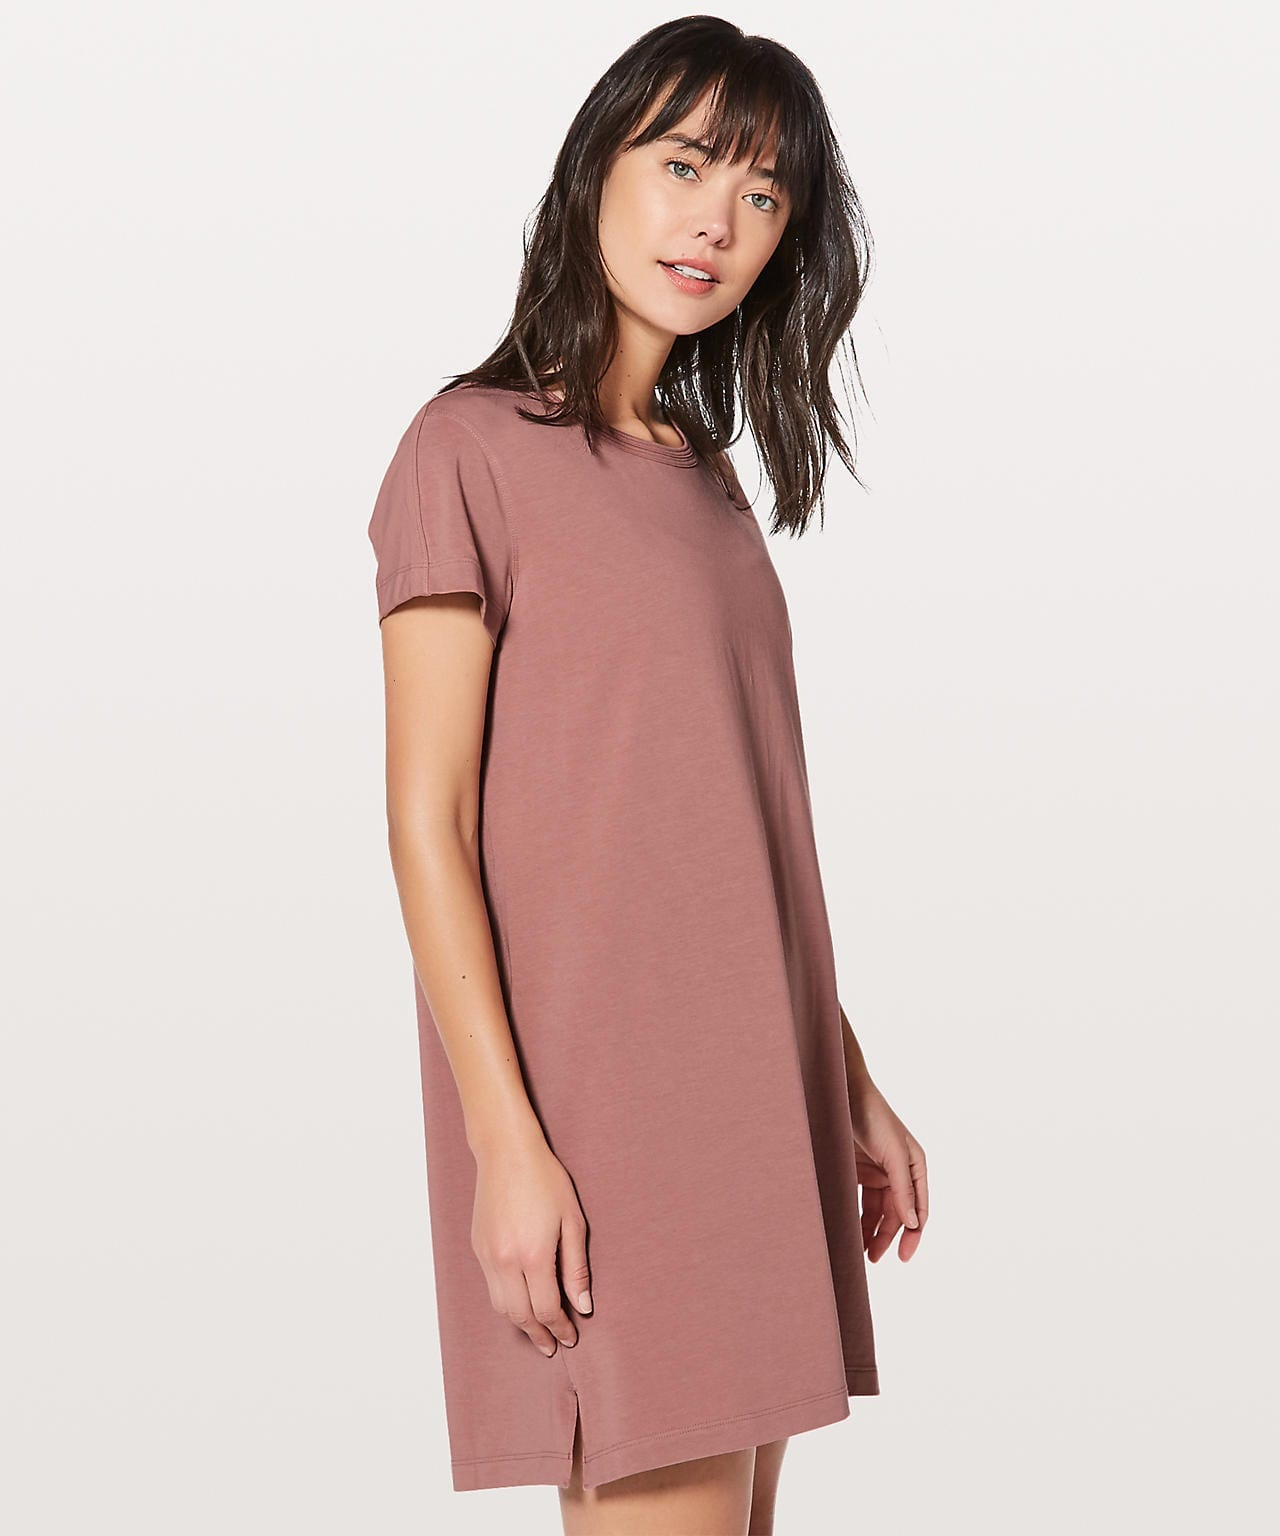 Lululemon Day Tripper Dress